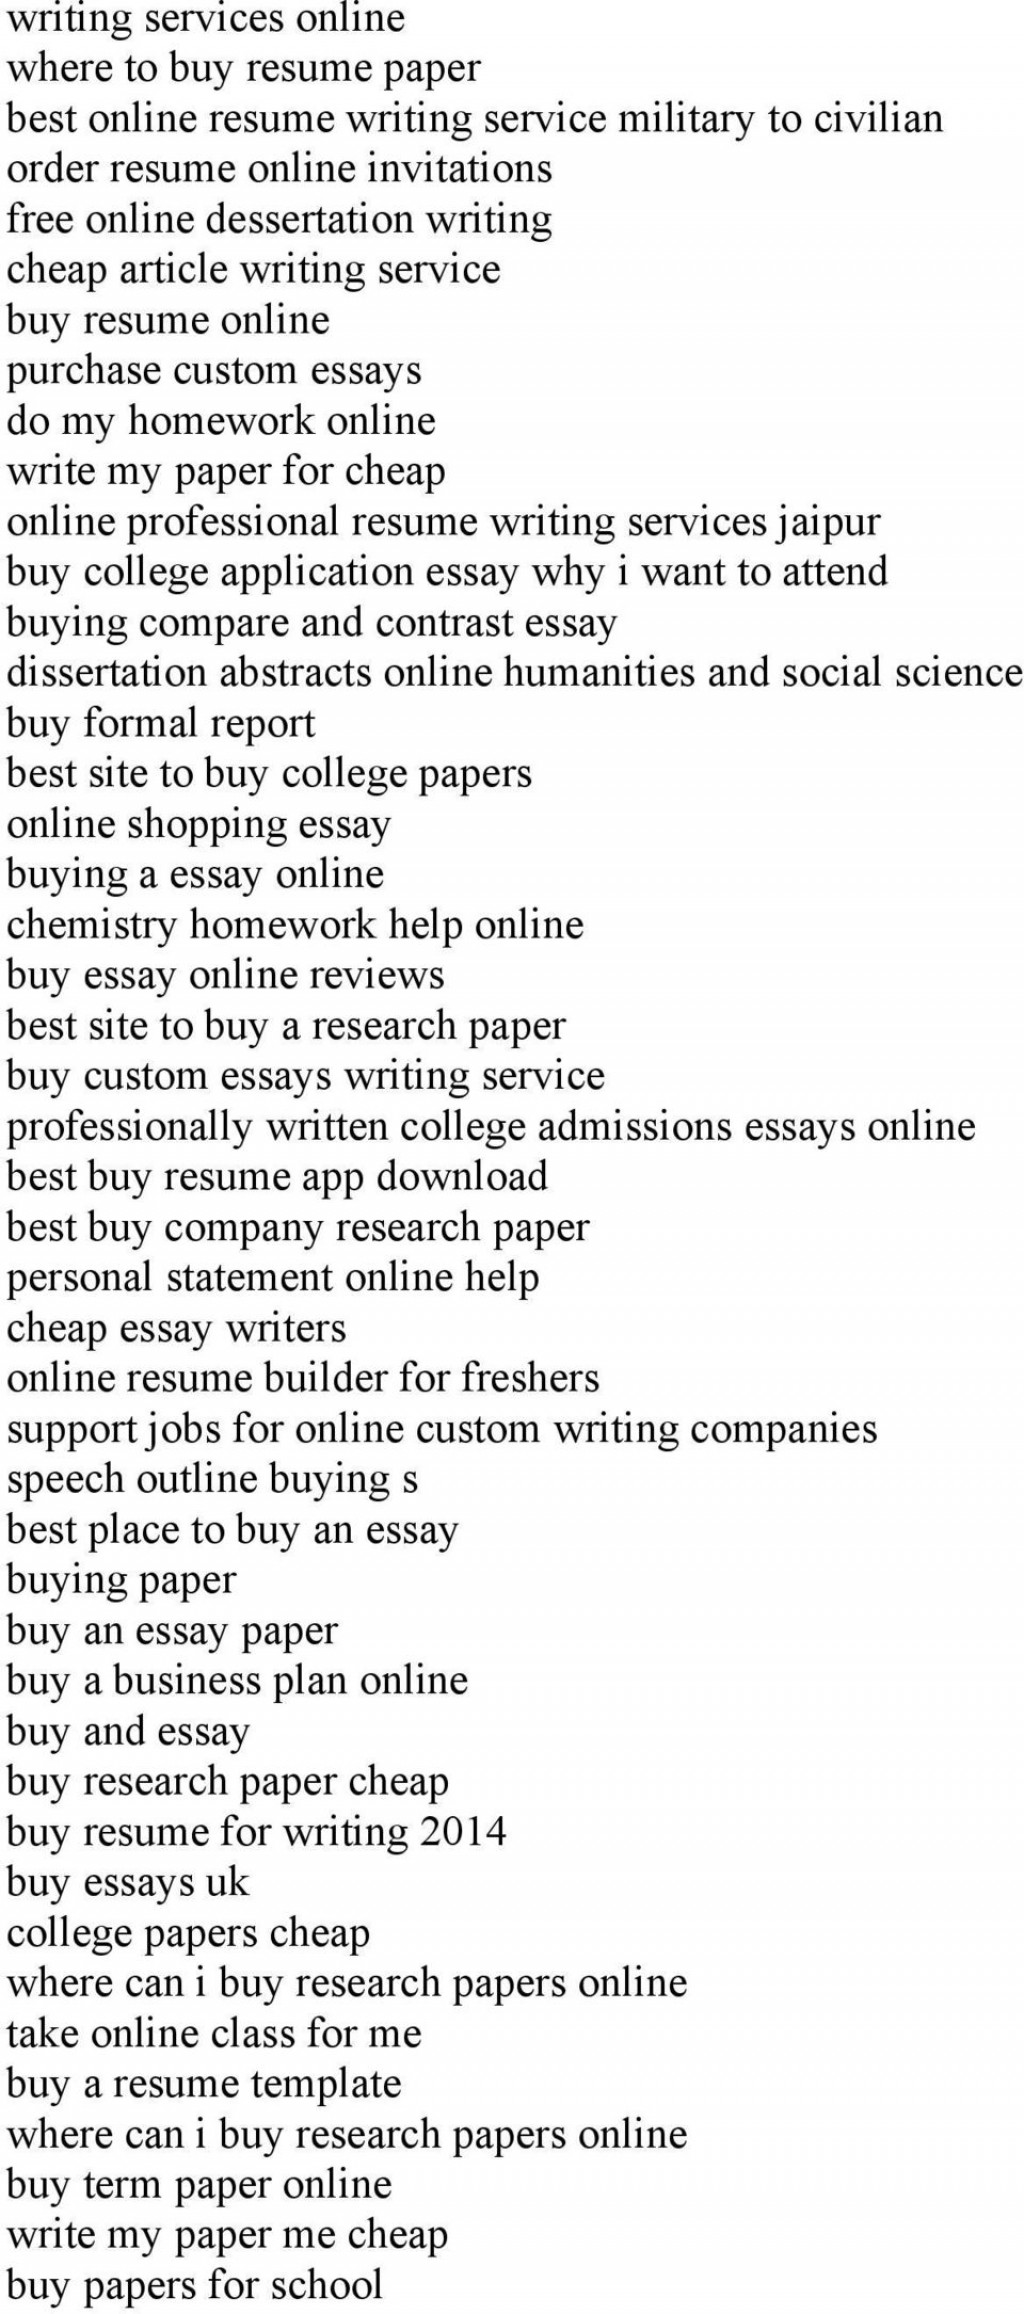 008 Buying Research Papers Online Reviews Paper Page 3 Staggering Large